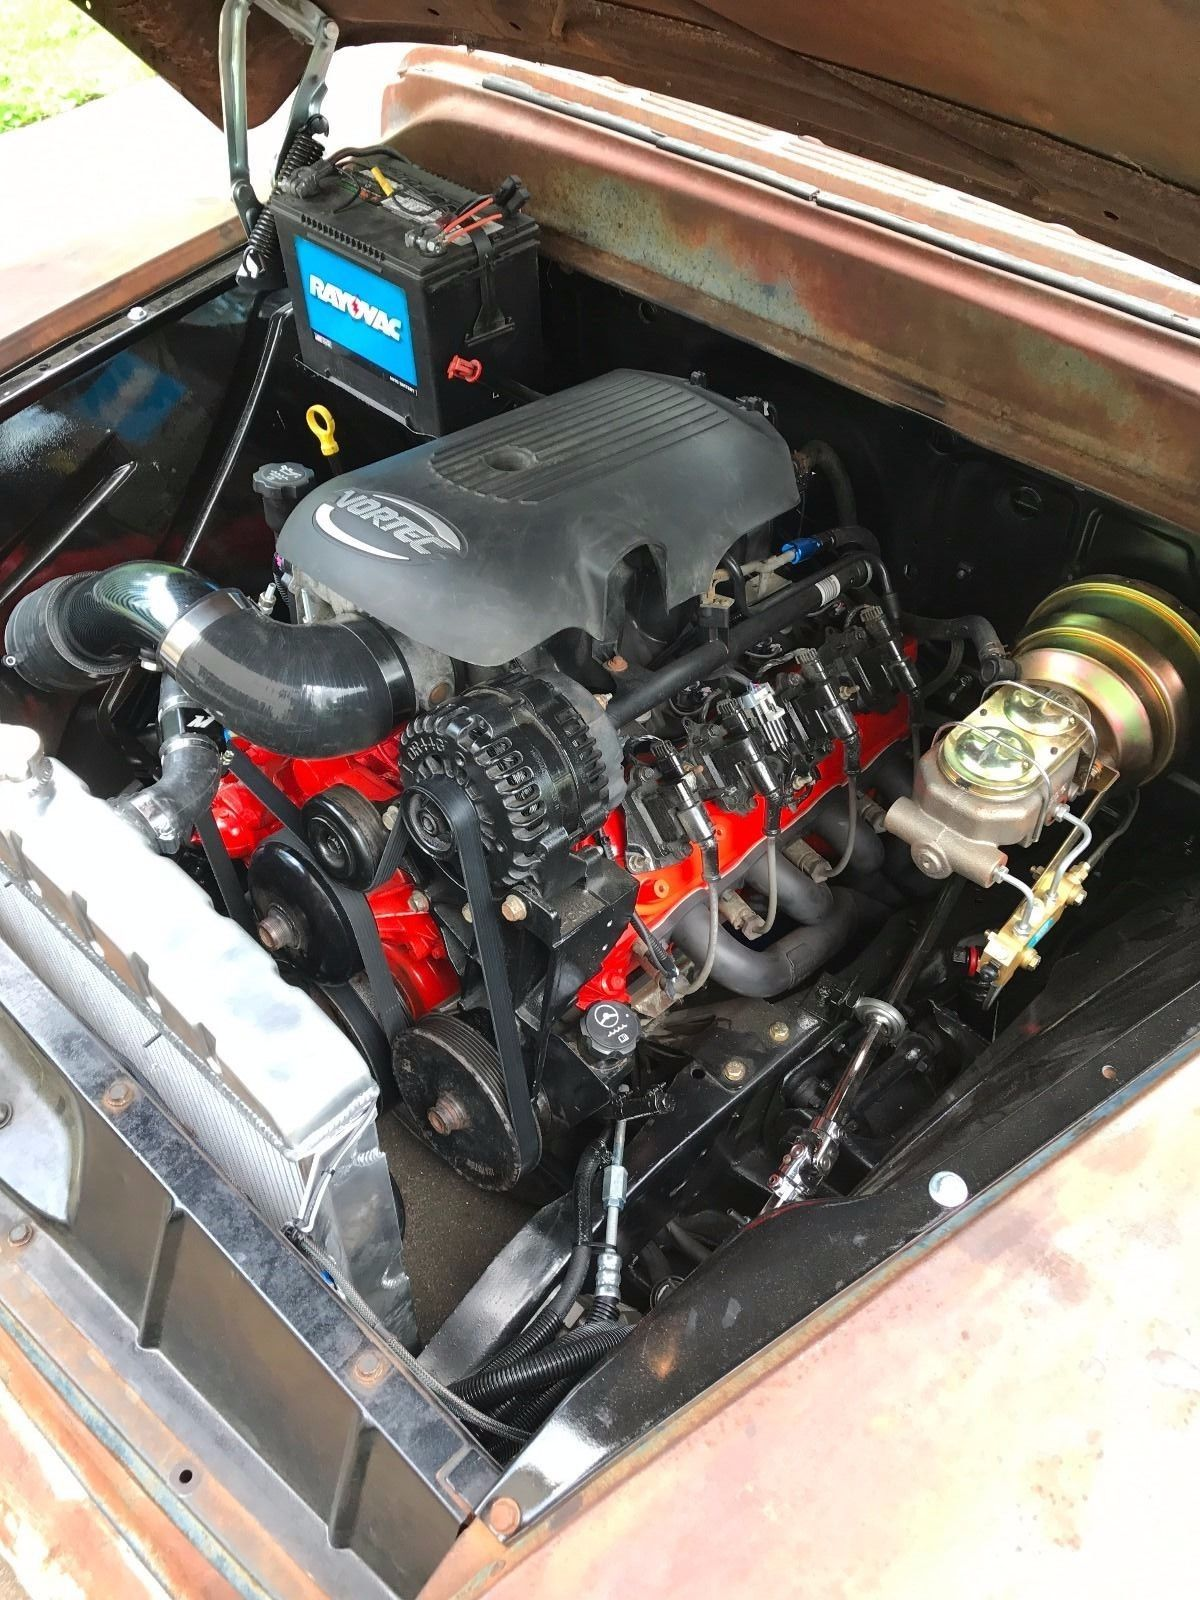 1955-Chevy-3100-truck-with-a-LSx-V8-06  Swap Wiring Harness on best street rod, fuel pump, universal painless, dodge engine, wire plus chopper, hot rod, fog light, aftermarket radio, classic truck,